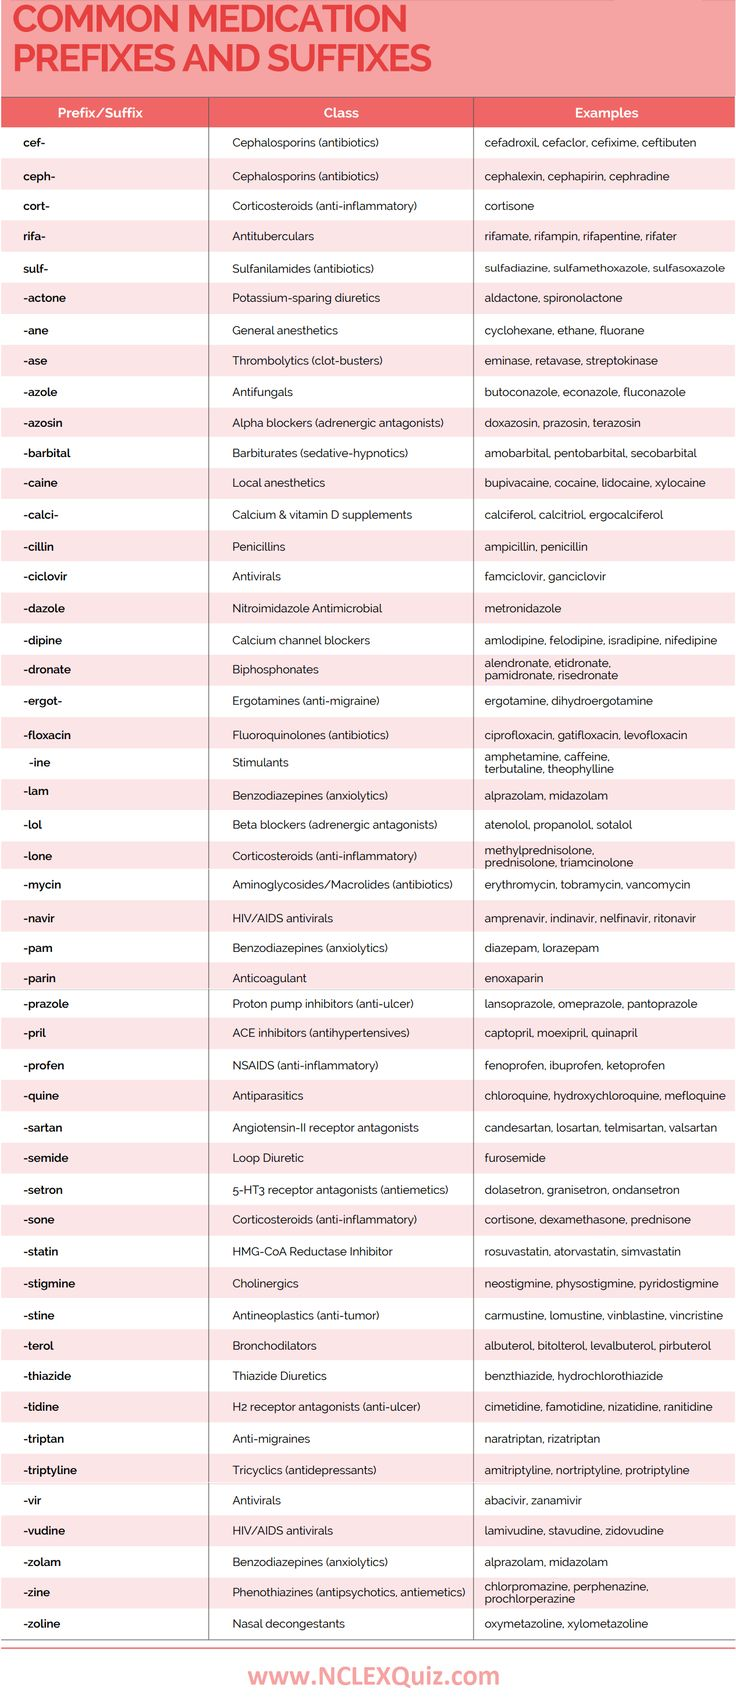 Common Medication Prefixes and Suffixes